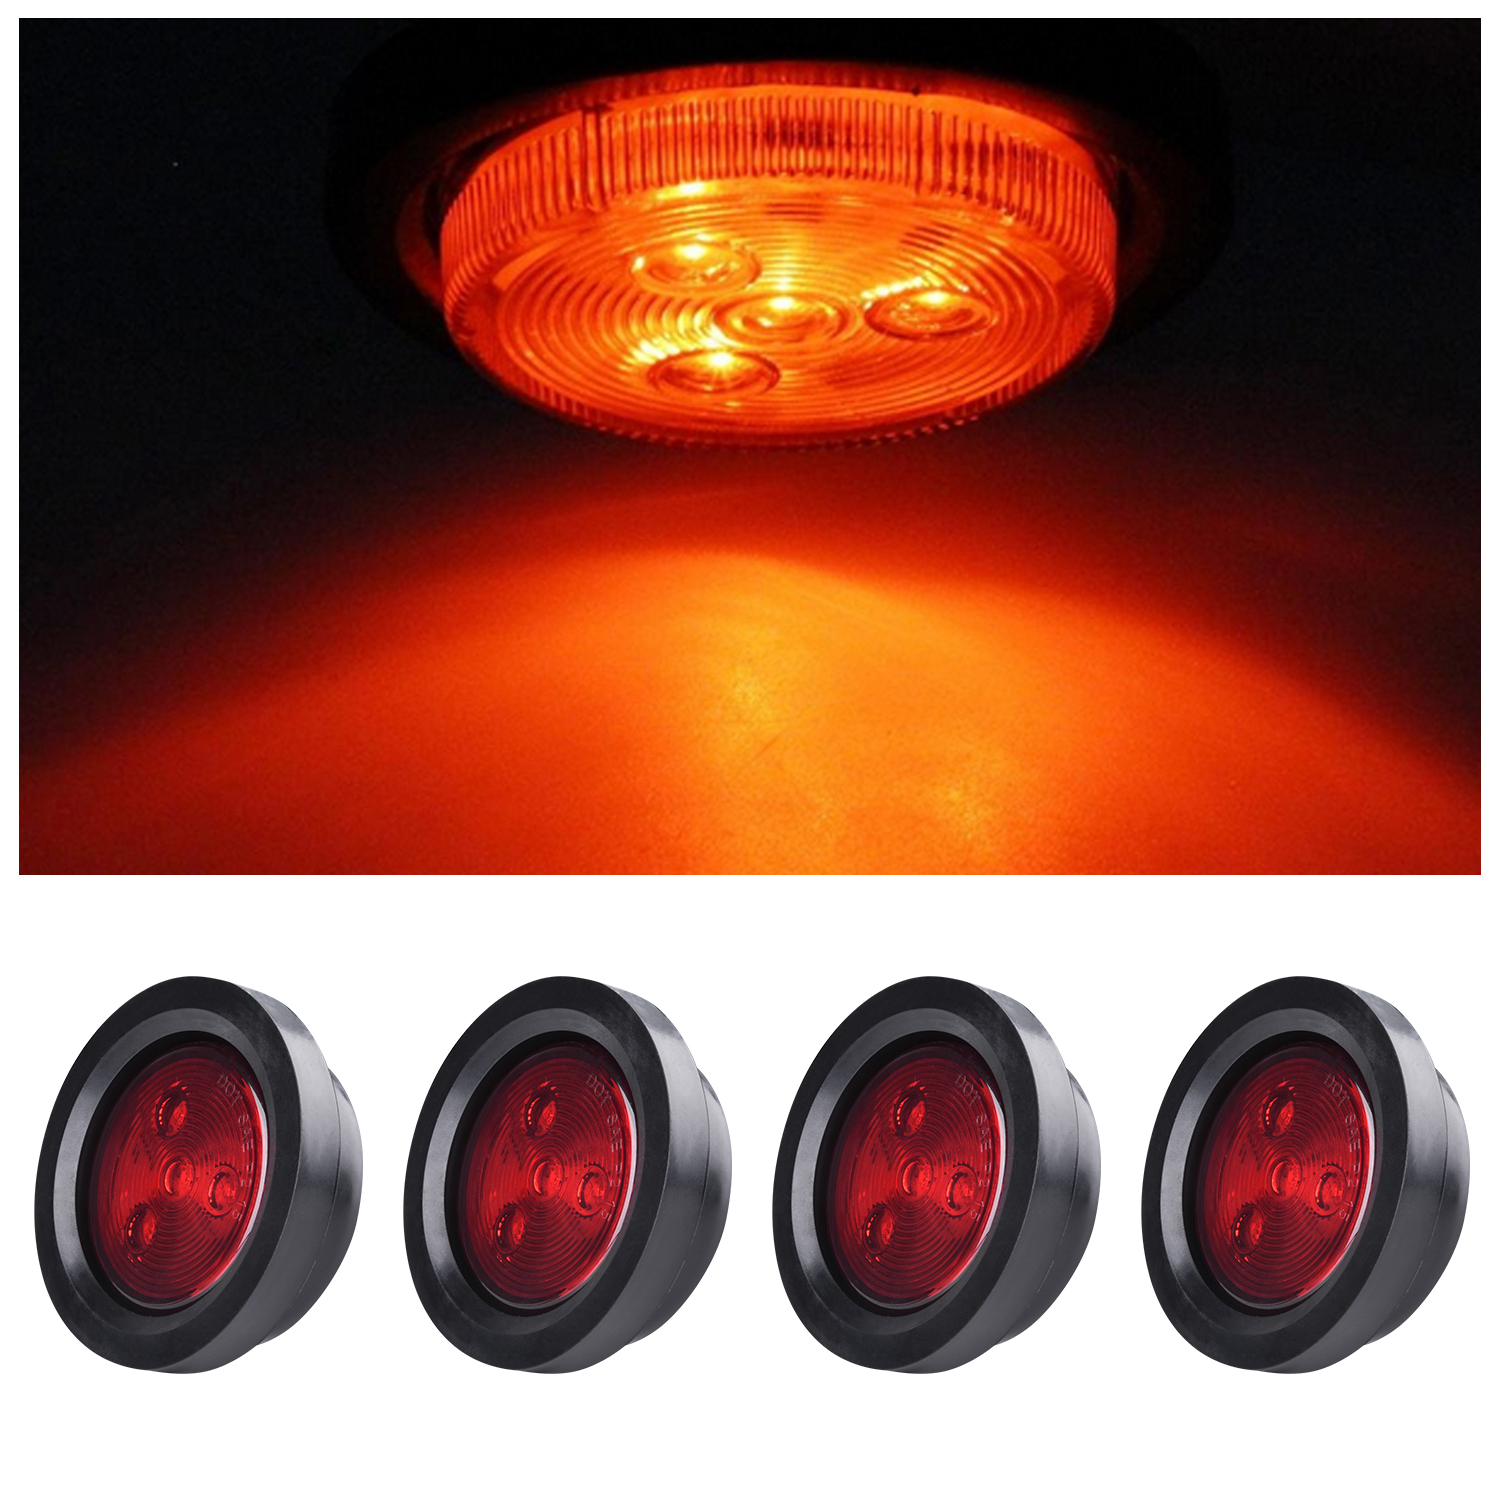 "4 Amber 4 Red 9Led Truck Trailer Clearance Lamp Side Marker Light Round 2/"" x 1/'/'"